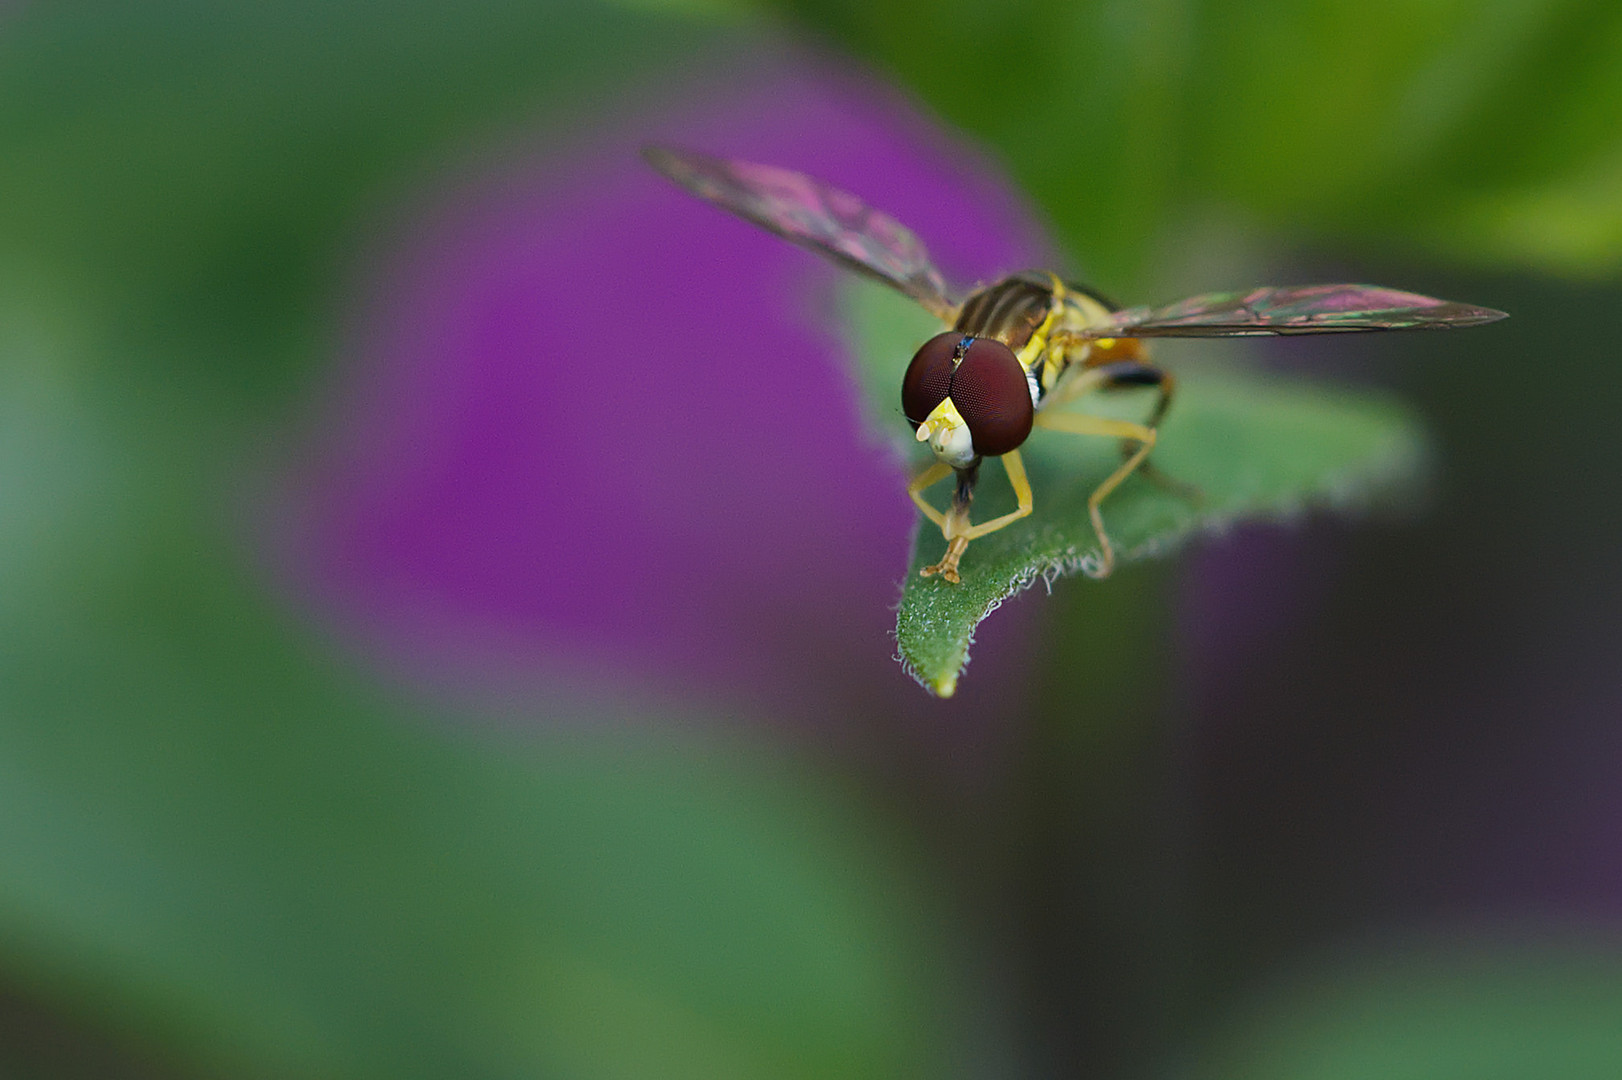 Portrait of a Hoverfly